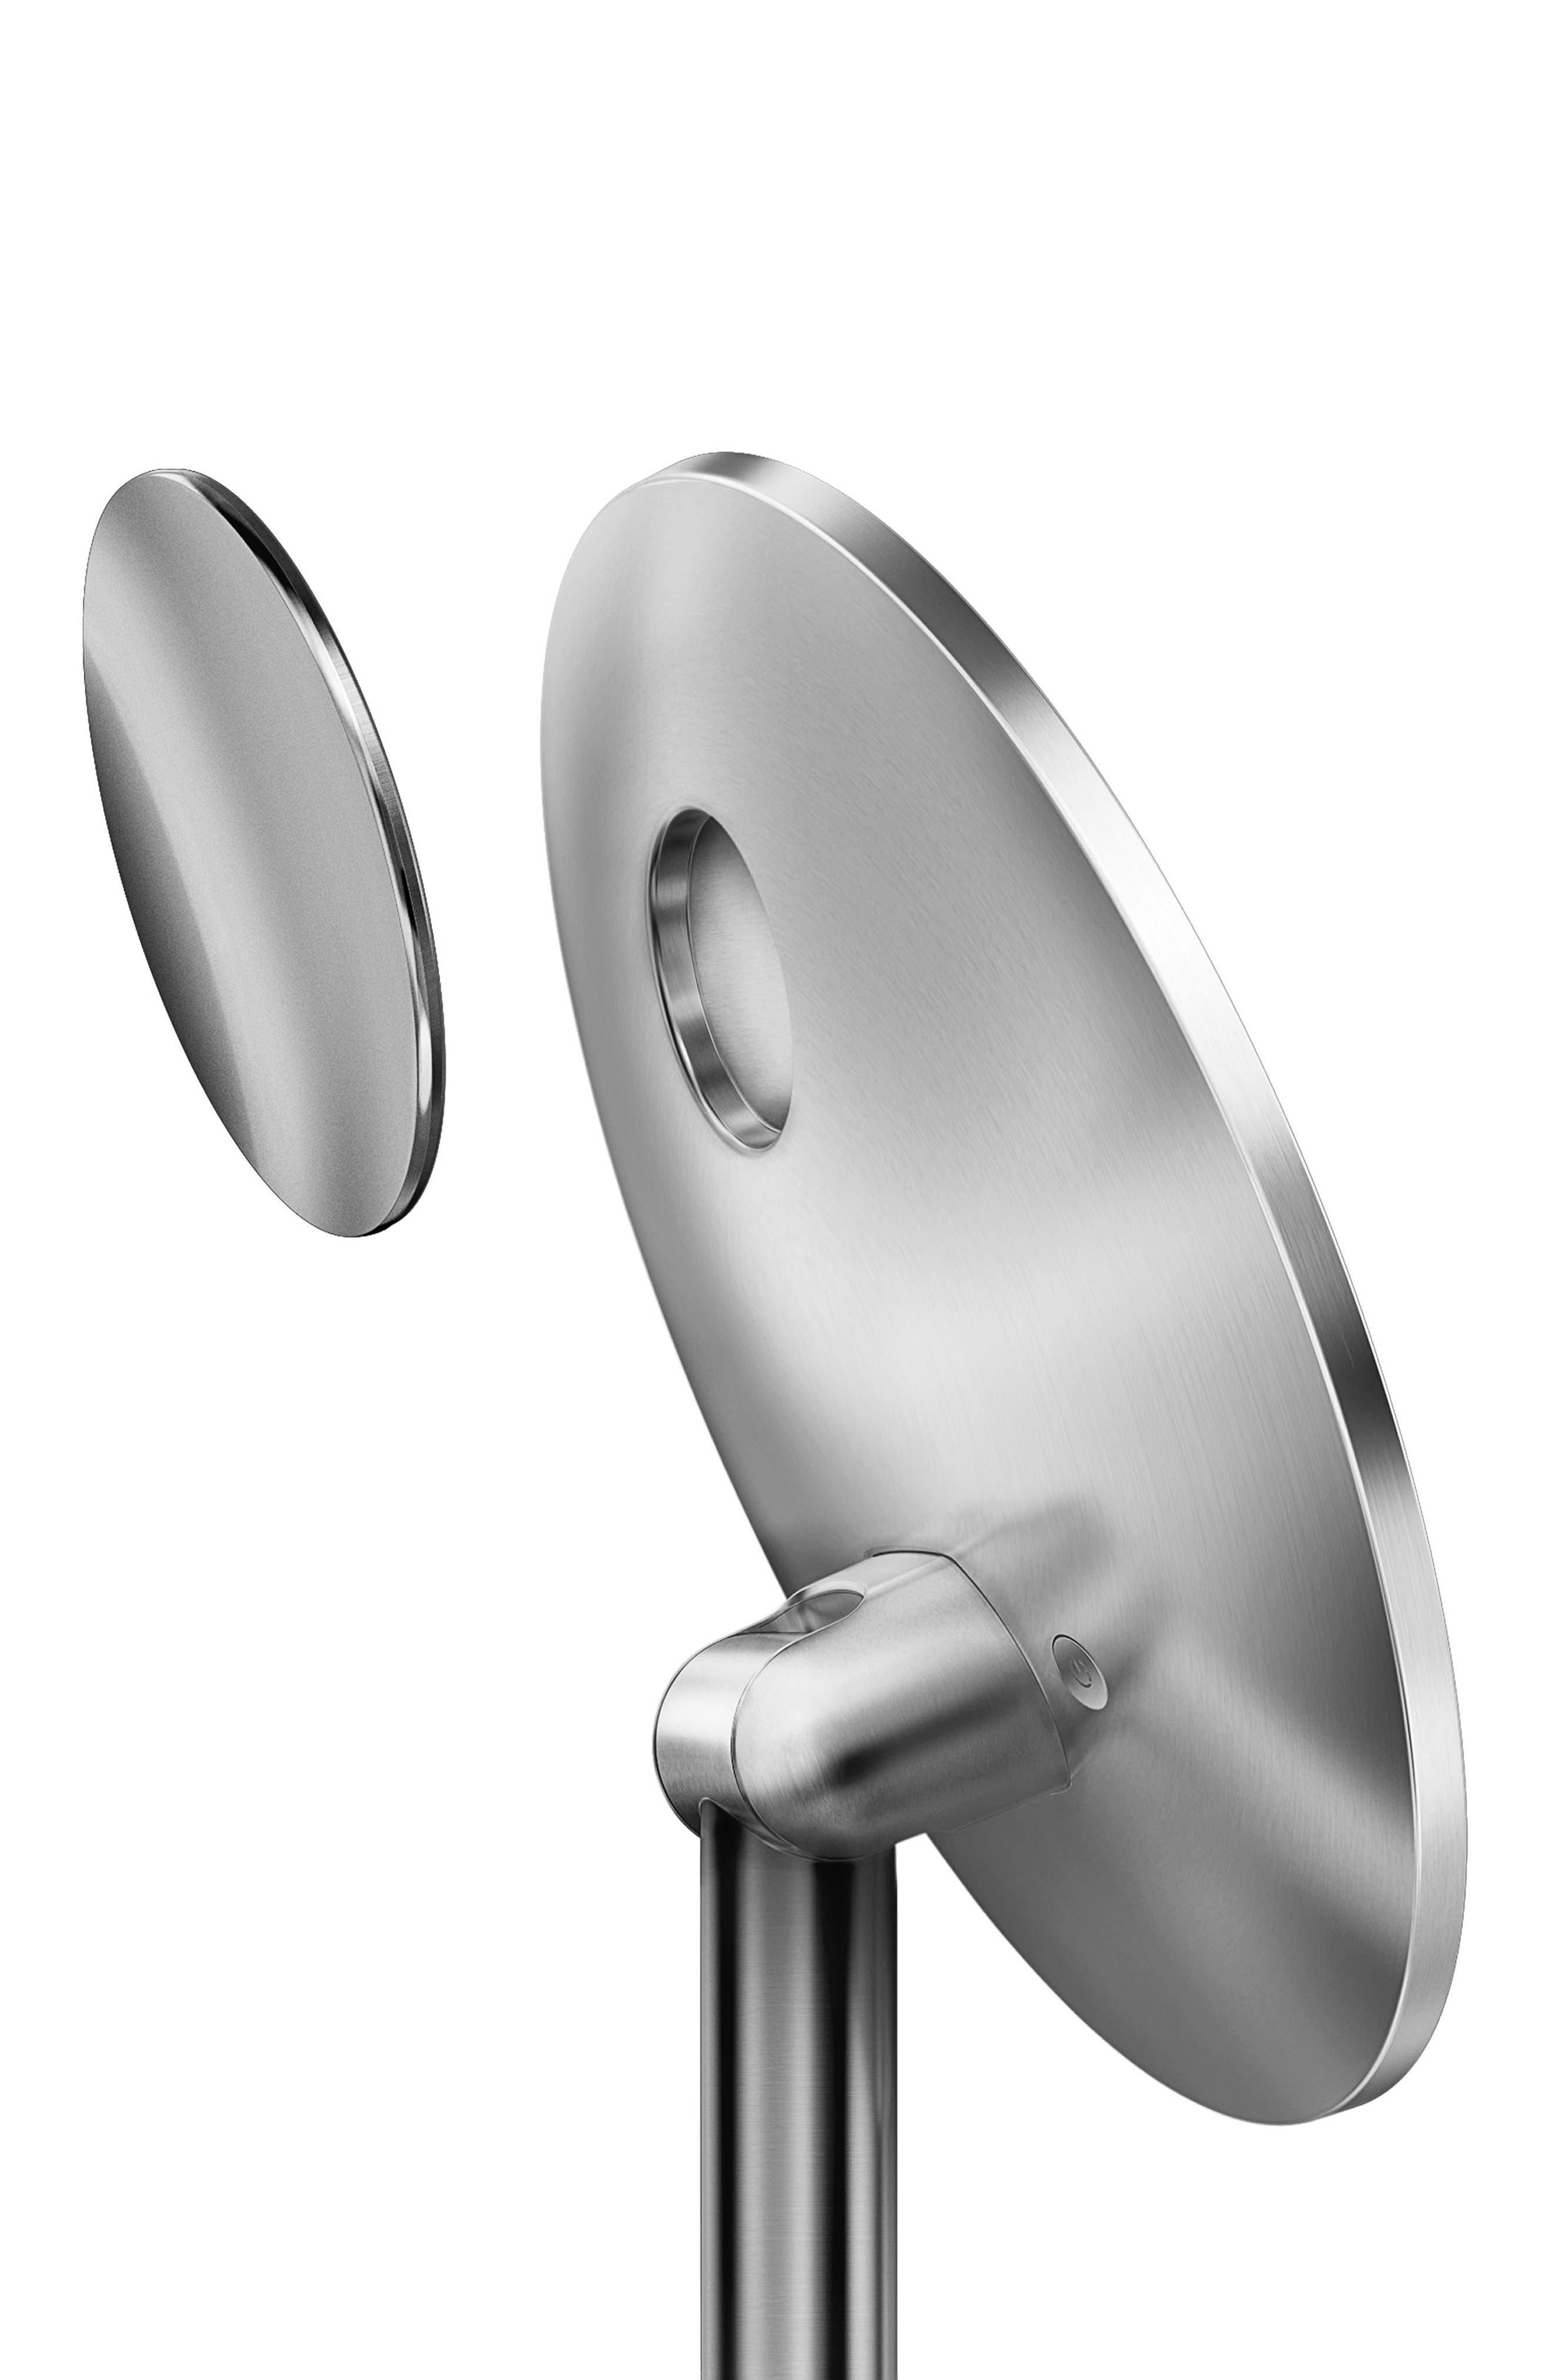 Round Sensor Mirror Pro,                             Alternate thumbnail 3, color,                             Stainless Steel